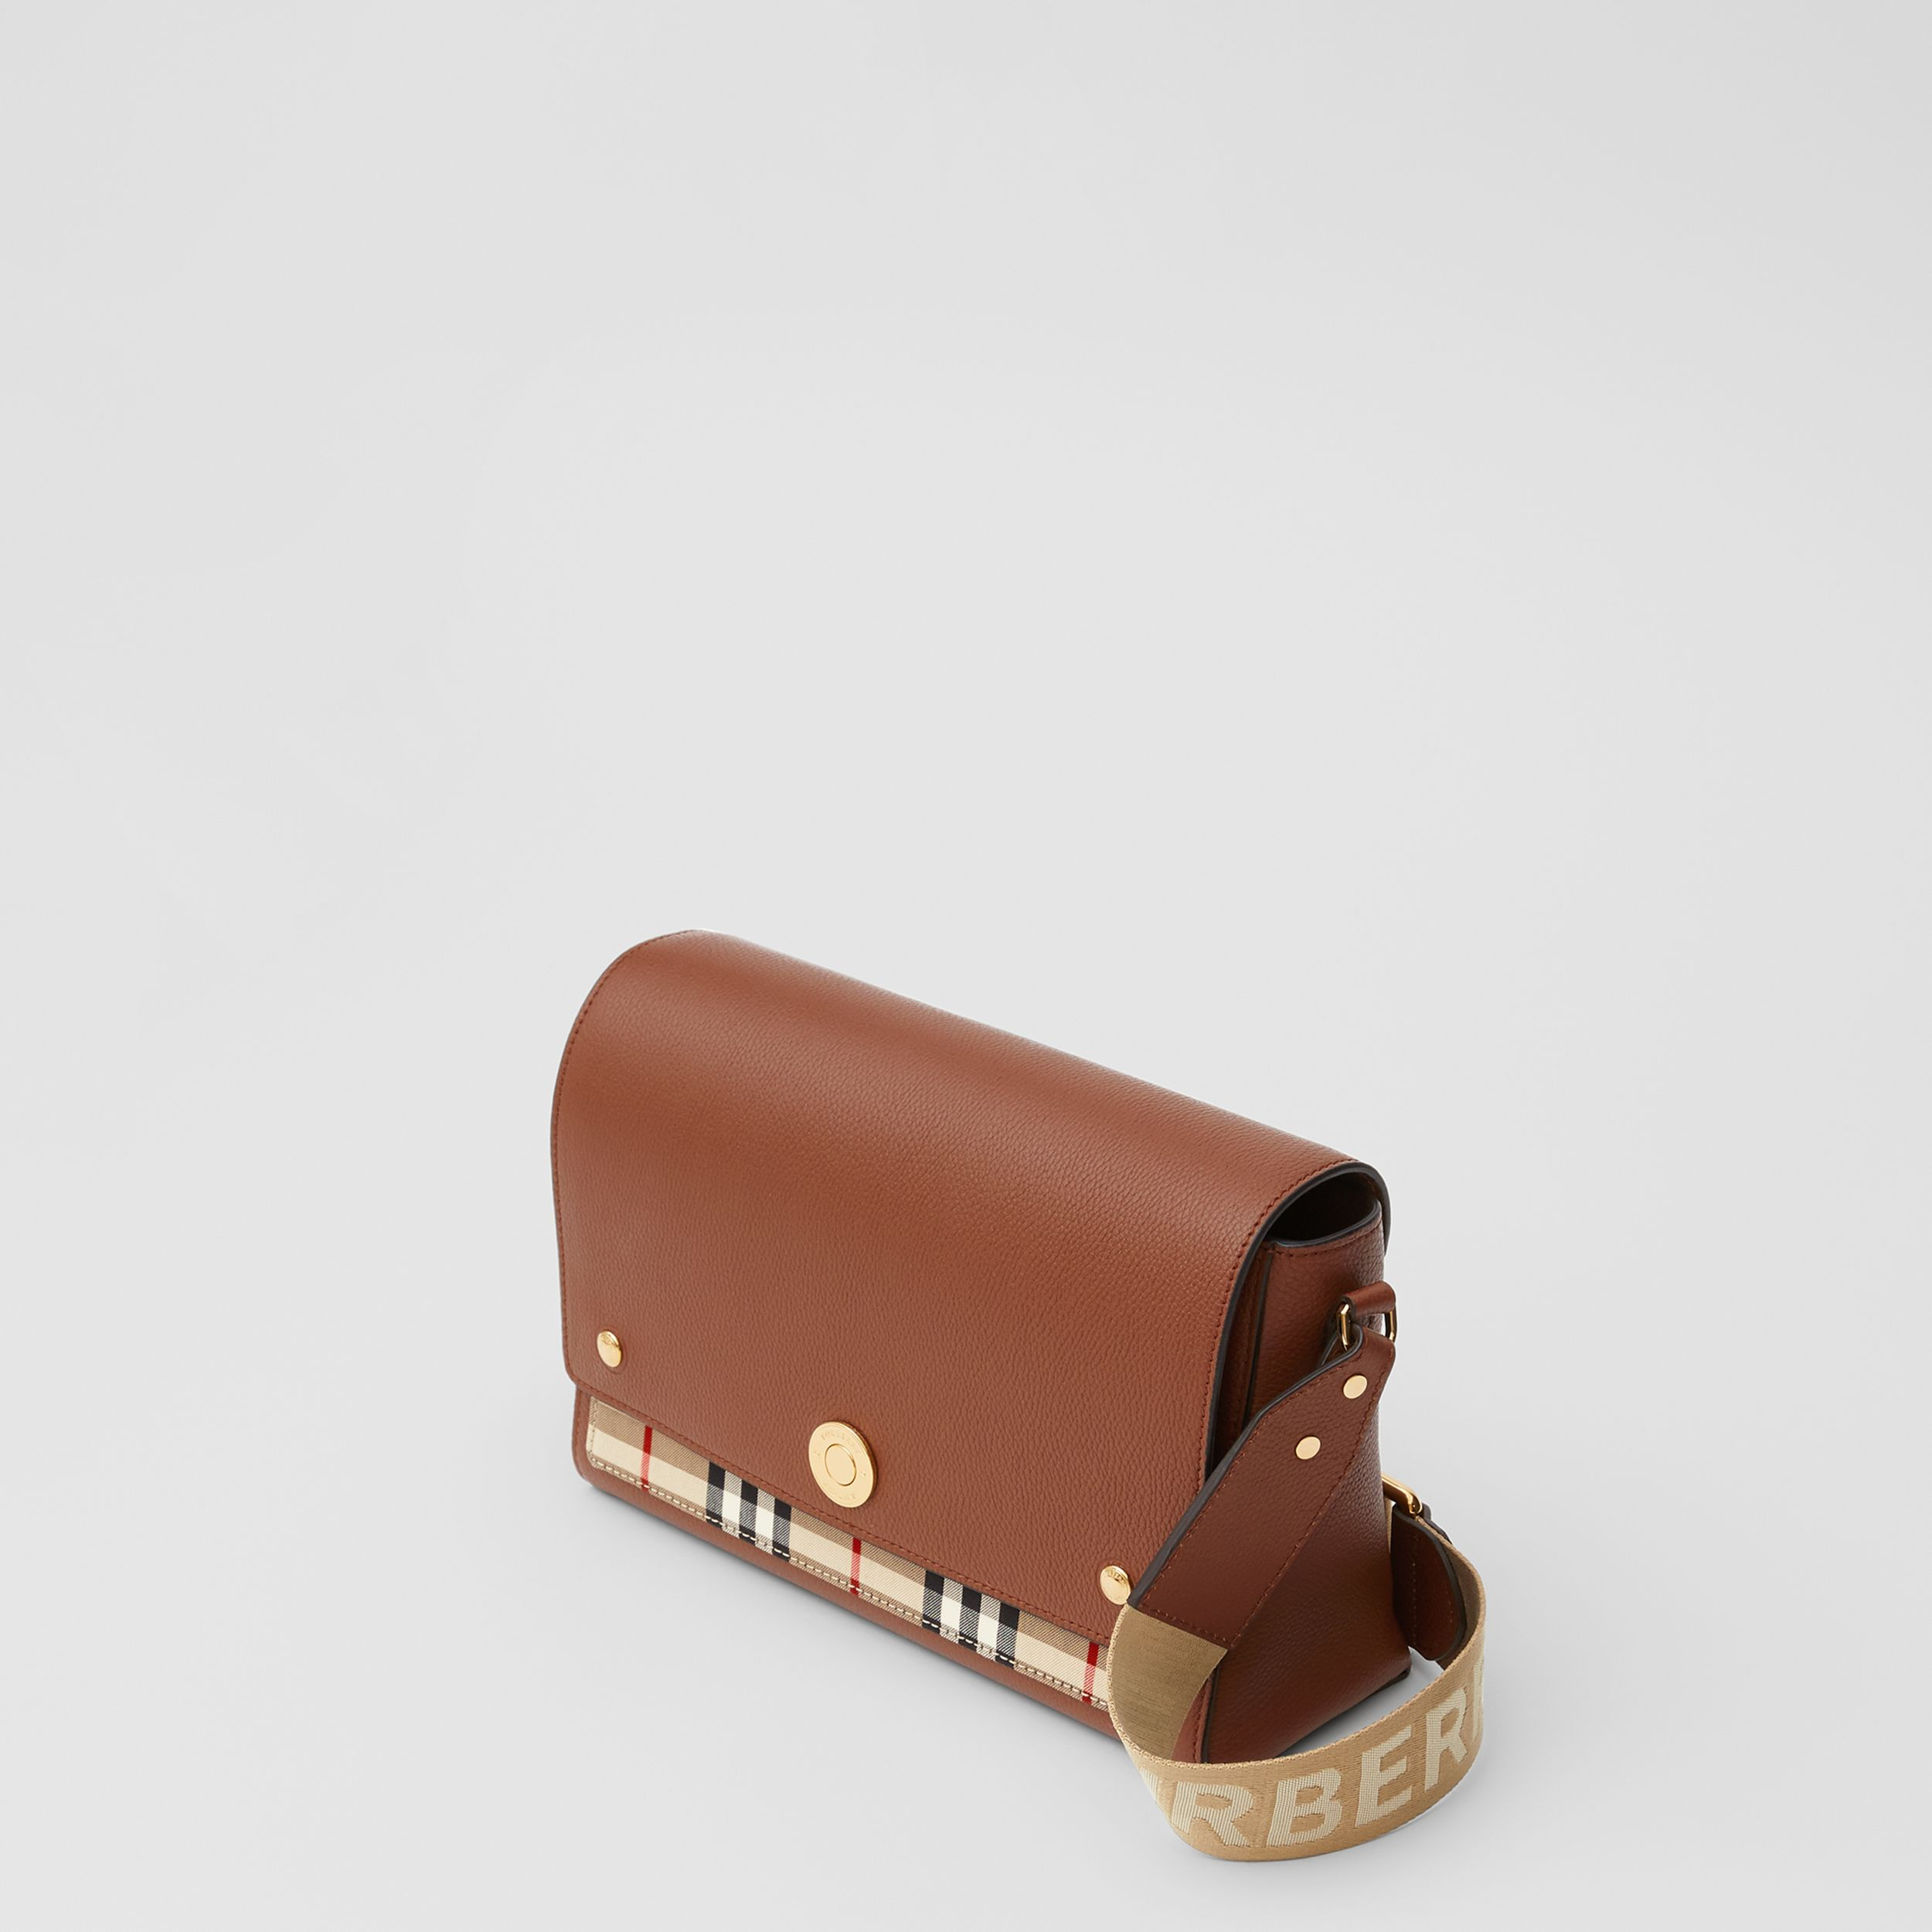 Leather and Vintage Check Note Crossbody Bag in Tan | Burberry - 4